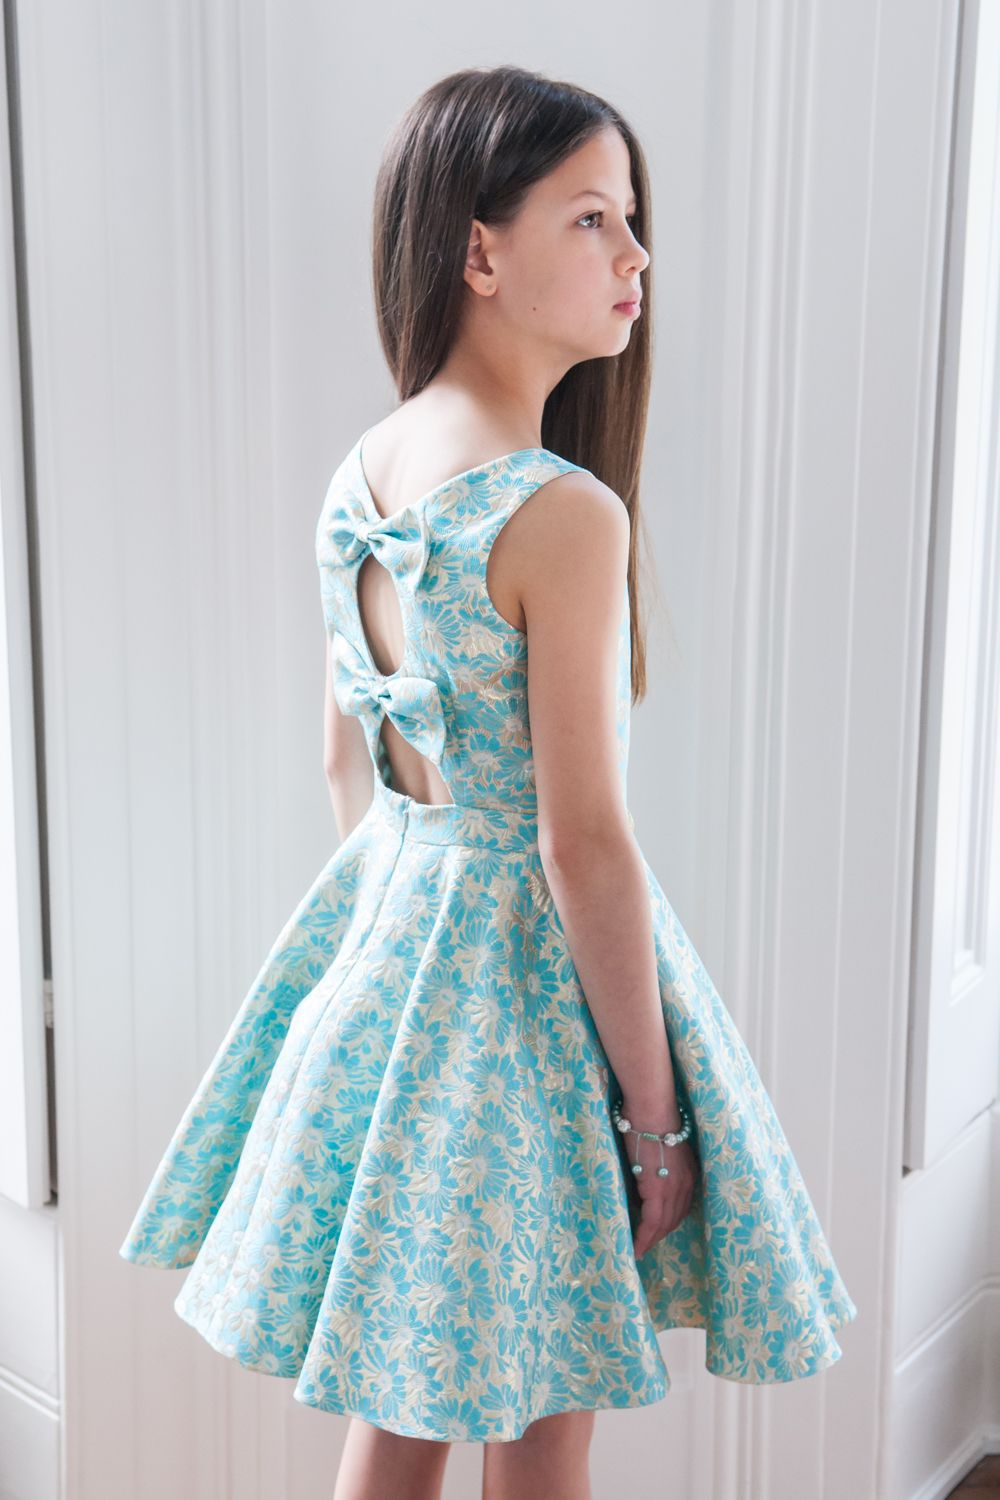 Turquoise Floral Party Dress | Center stage, Birthday celebration ...